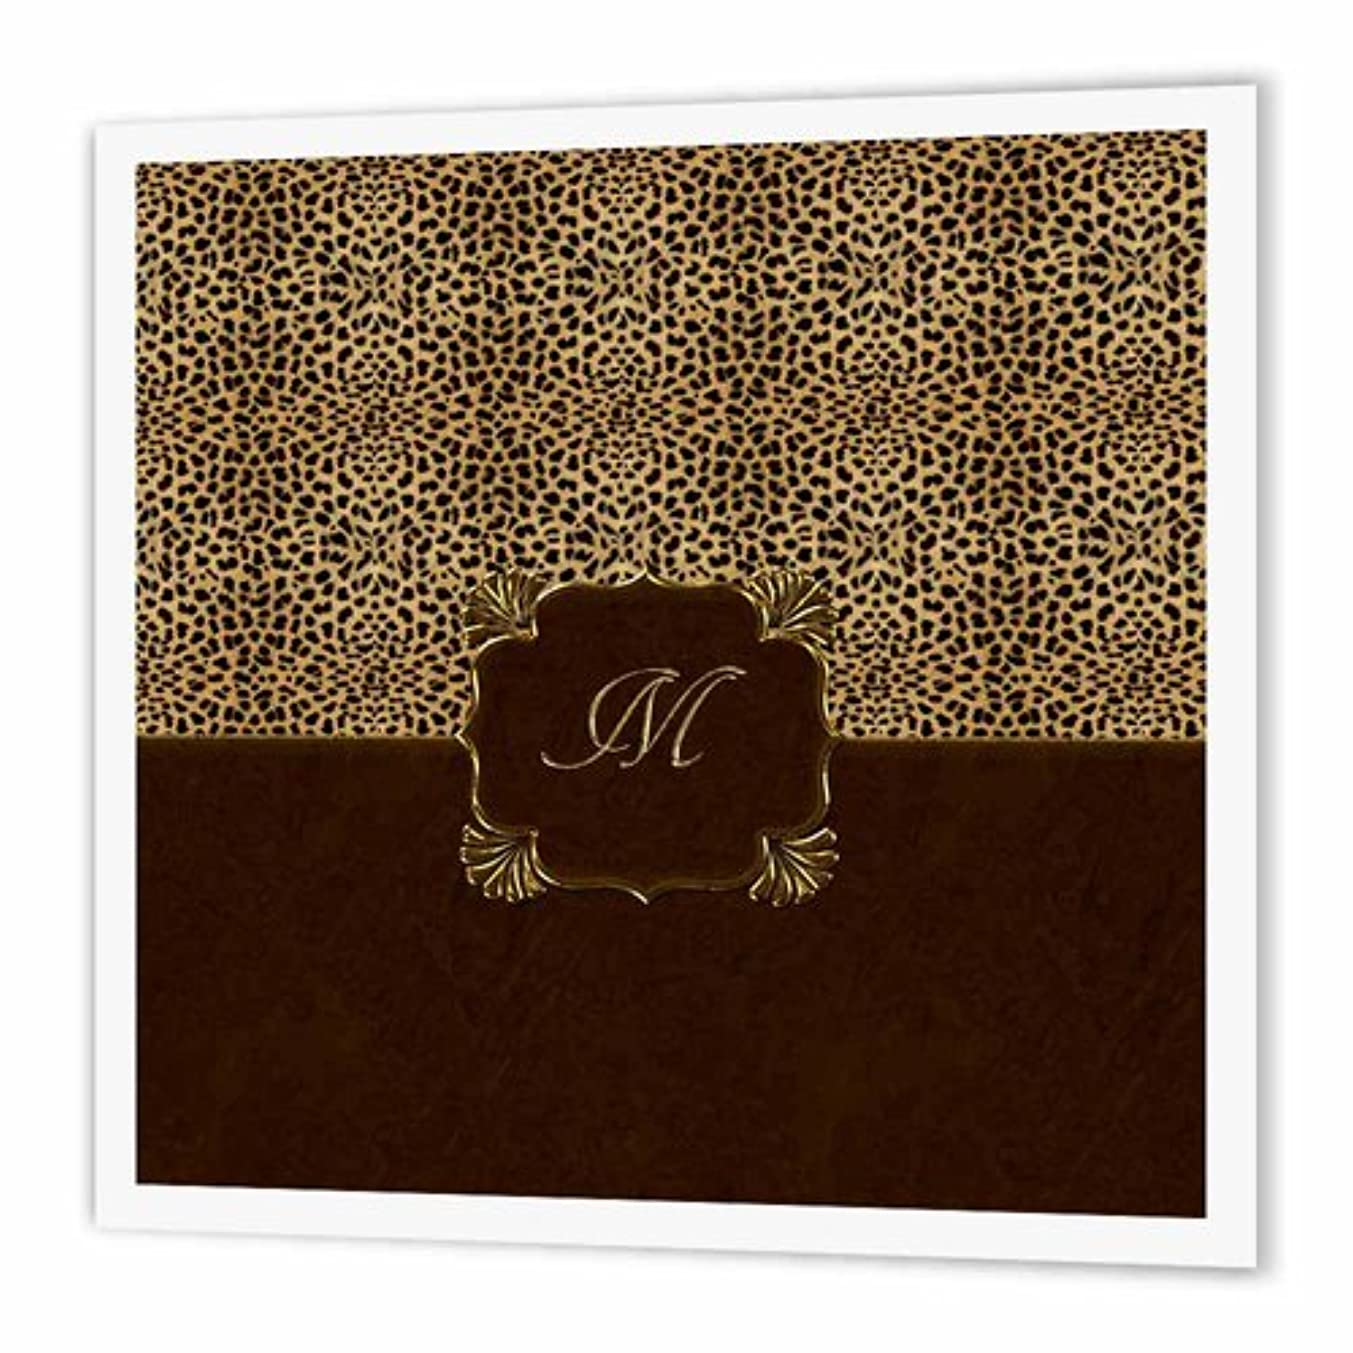 3dRose Elegant Cheetah Animal Print with Gold Framed Monogram Letter M - Iron on Heat Transfer, 6 by 6-Inch, for White Material (ht_113828_2)